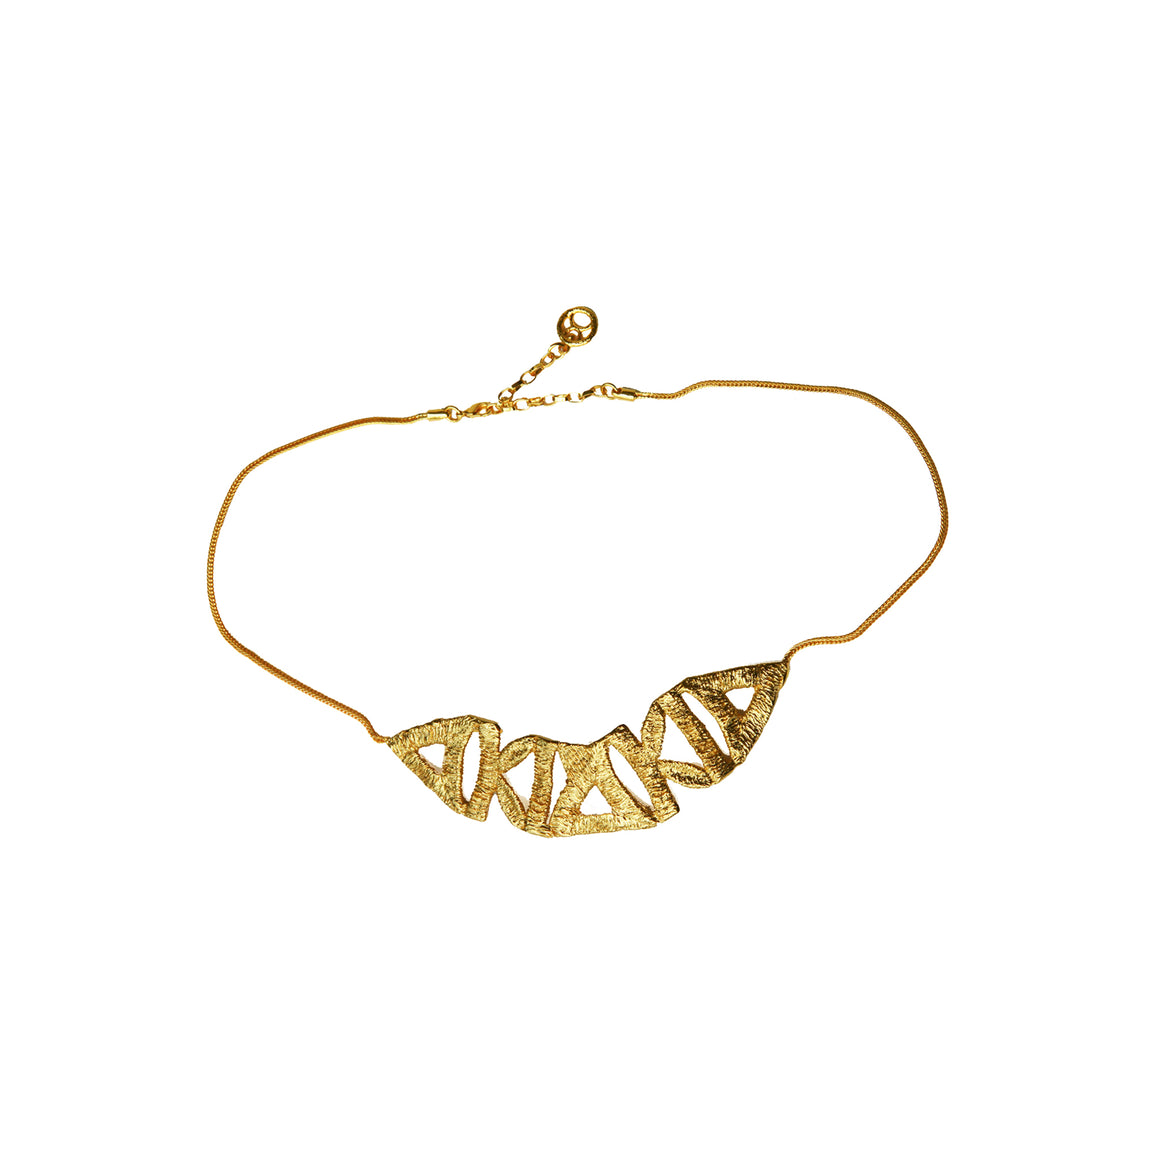 Art Deco necklace 2-gold-designed by alexandra koumba